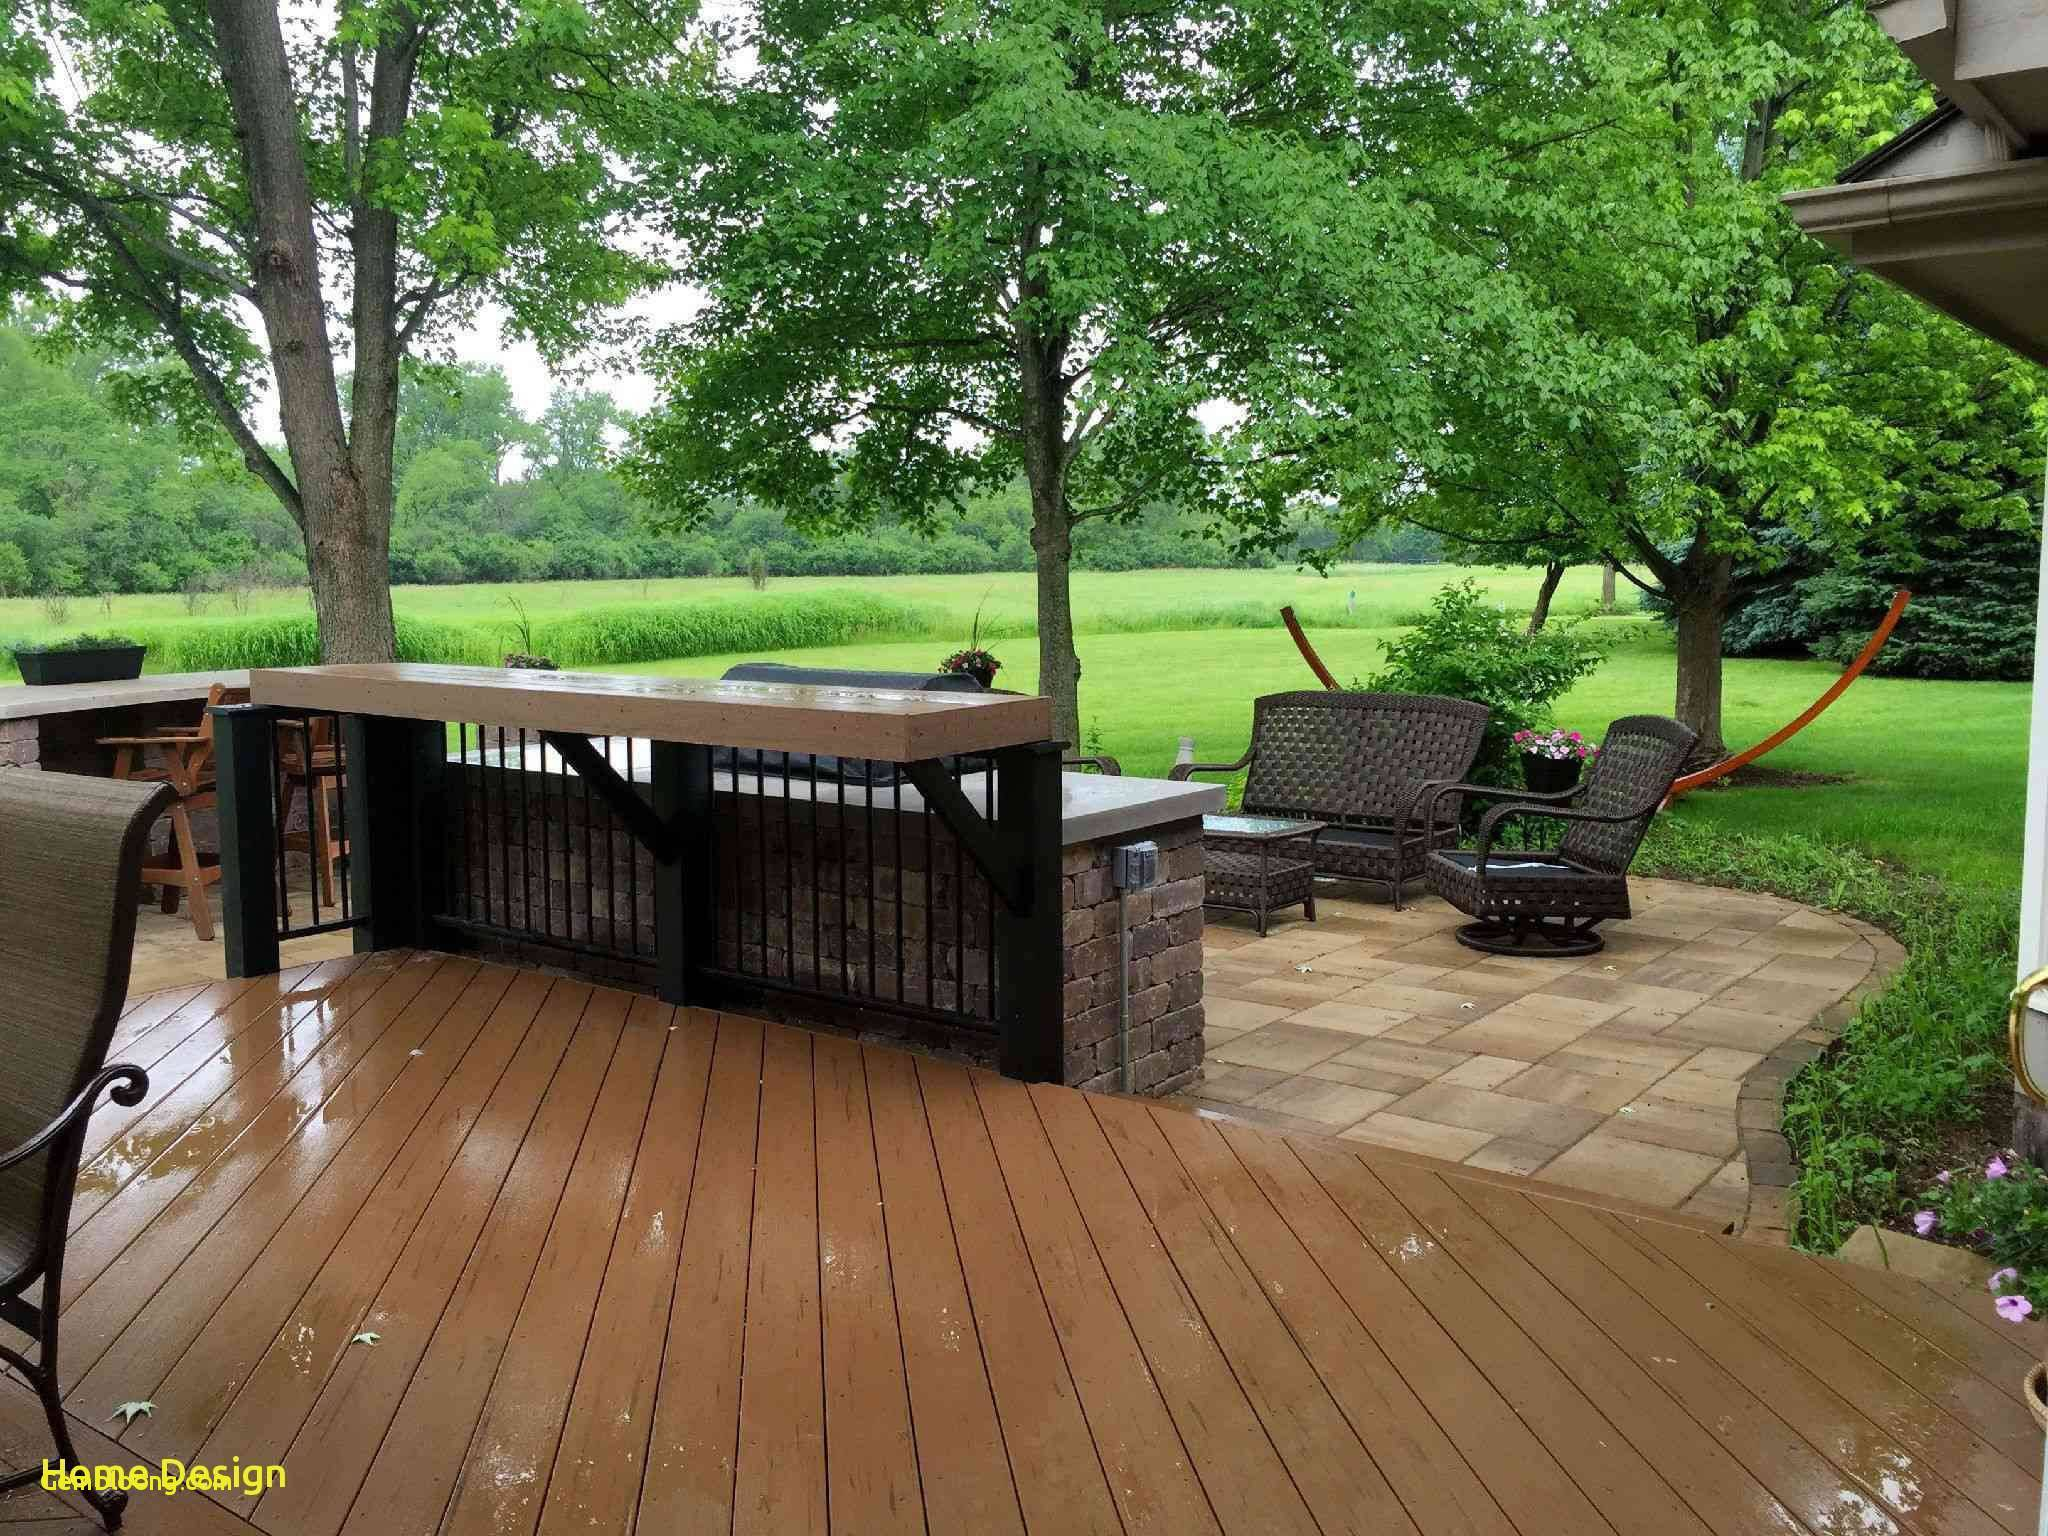 yd hardwood floors of 20 best of images of backyard decks a blue history regarding backyard design deck fresh cheap deck ideas elegant home patio lovely patio decking 0d